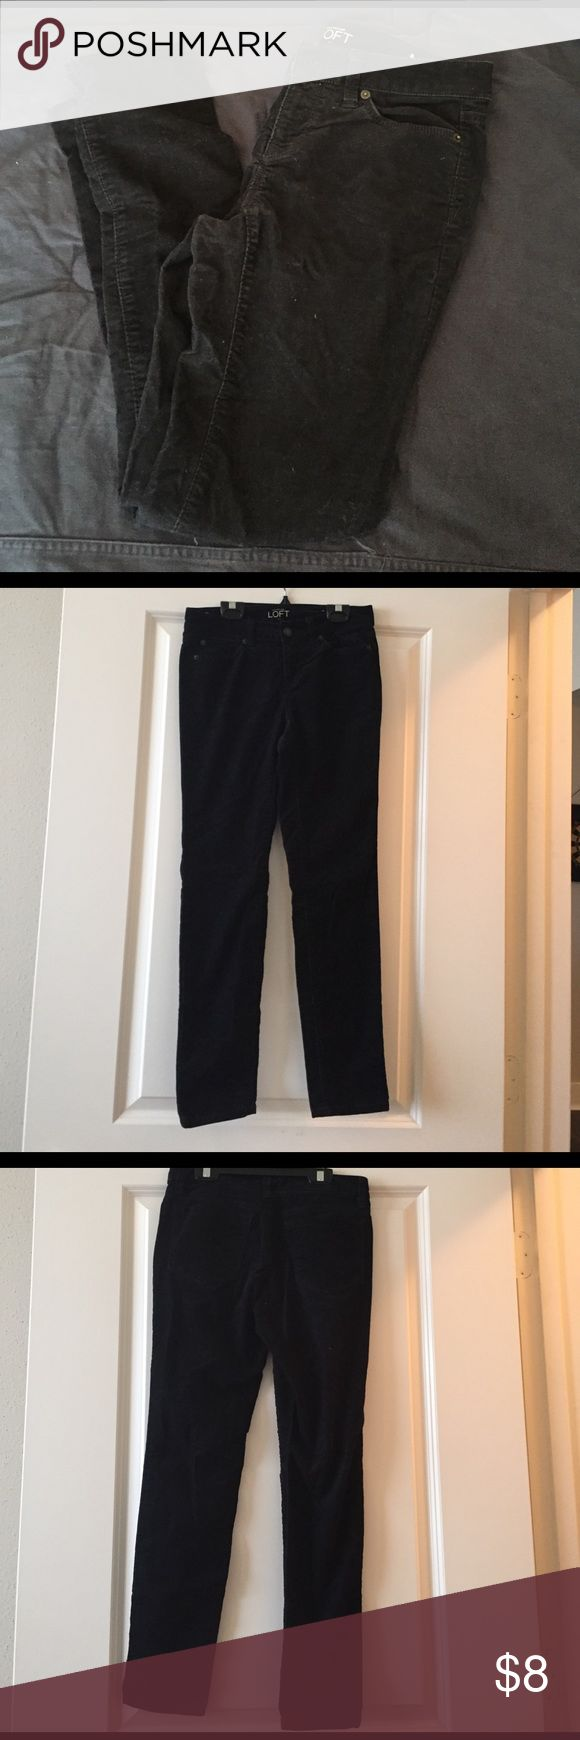 ❄️Winter Sale!❄️ LOFT black corduroys OP Trying to get rid of all our winter clothes so feel free to bundle and make an offer, willing to negotiate! Good condition, no tears, holes, or stains. Let me know if you have any questions! LOFT Pants